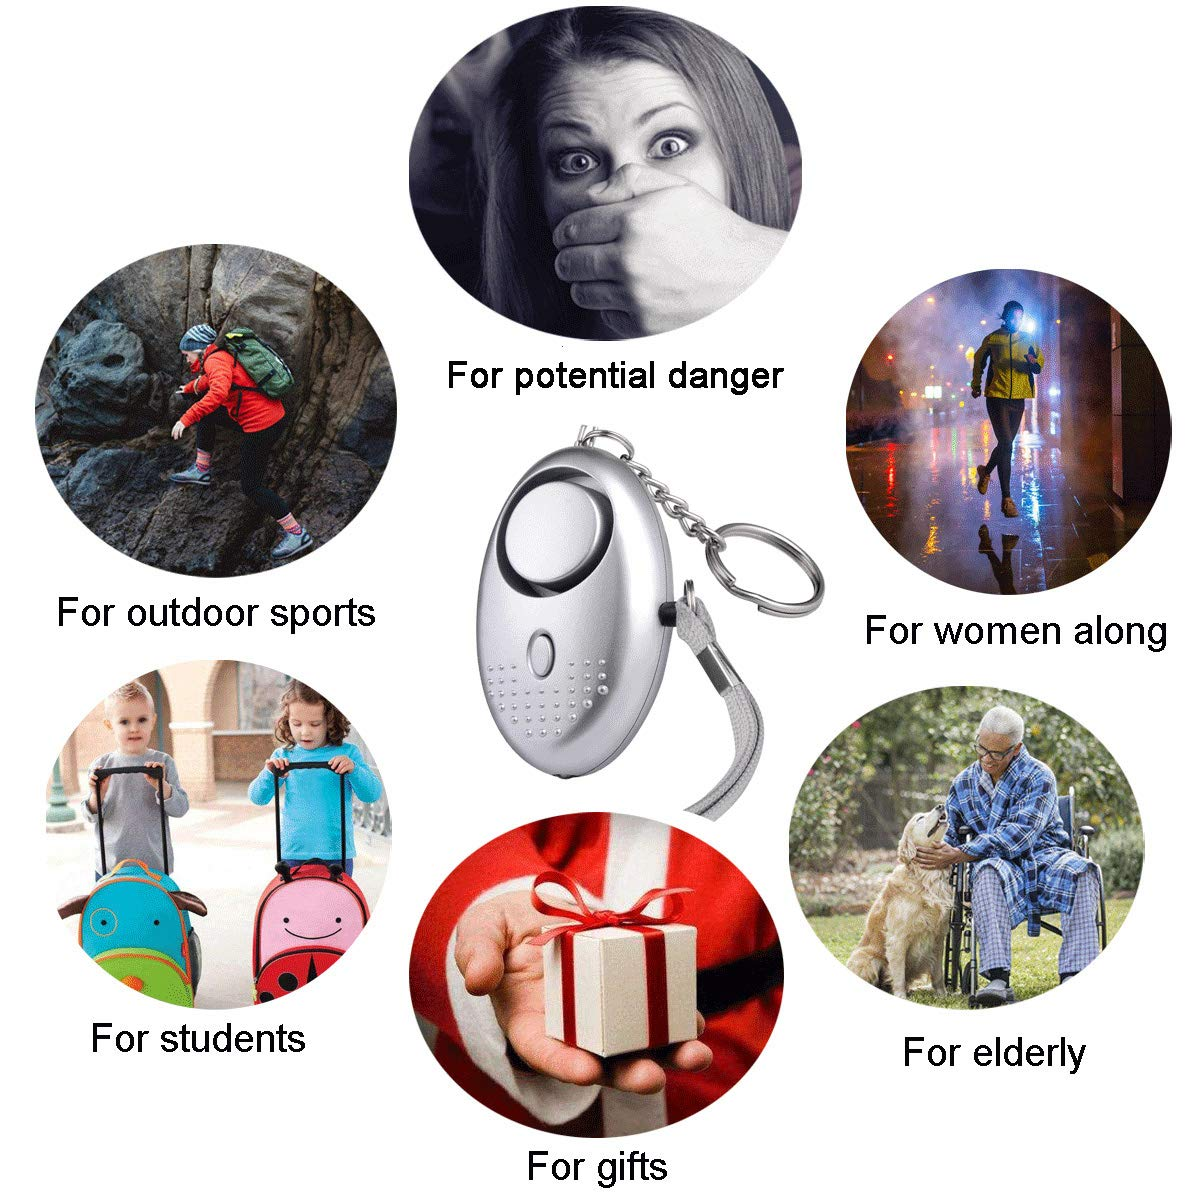 FansArriche 3 PACK Personal Alarm Keychain with Flashlight Personal Protection Devices for Women Girls,Kids and Elderly